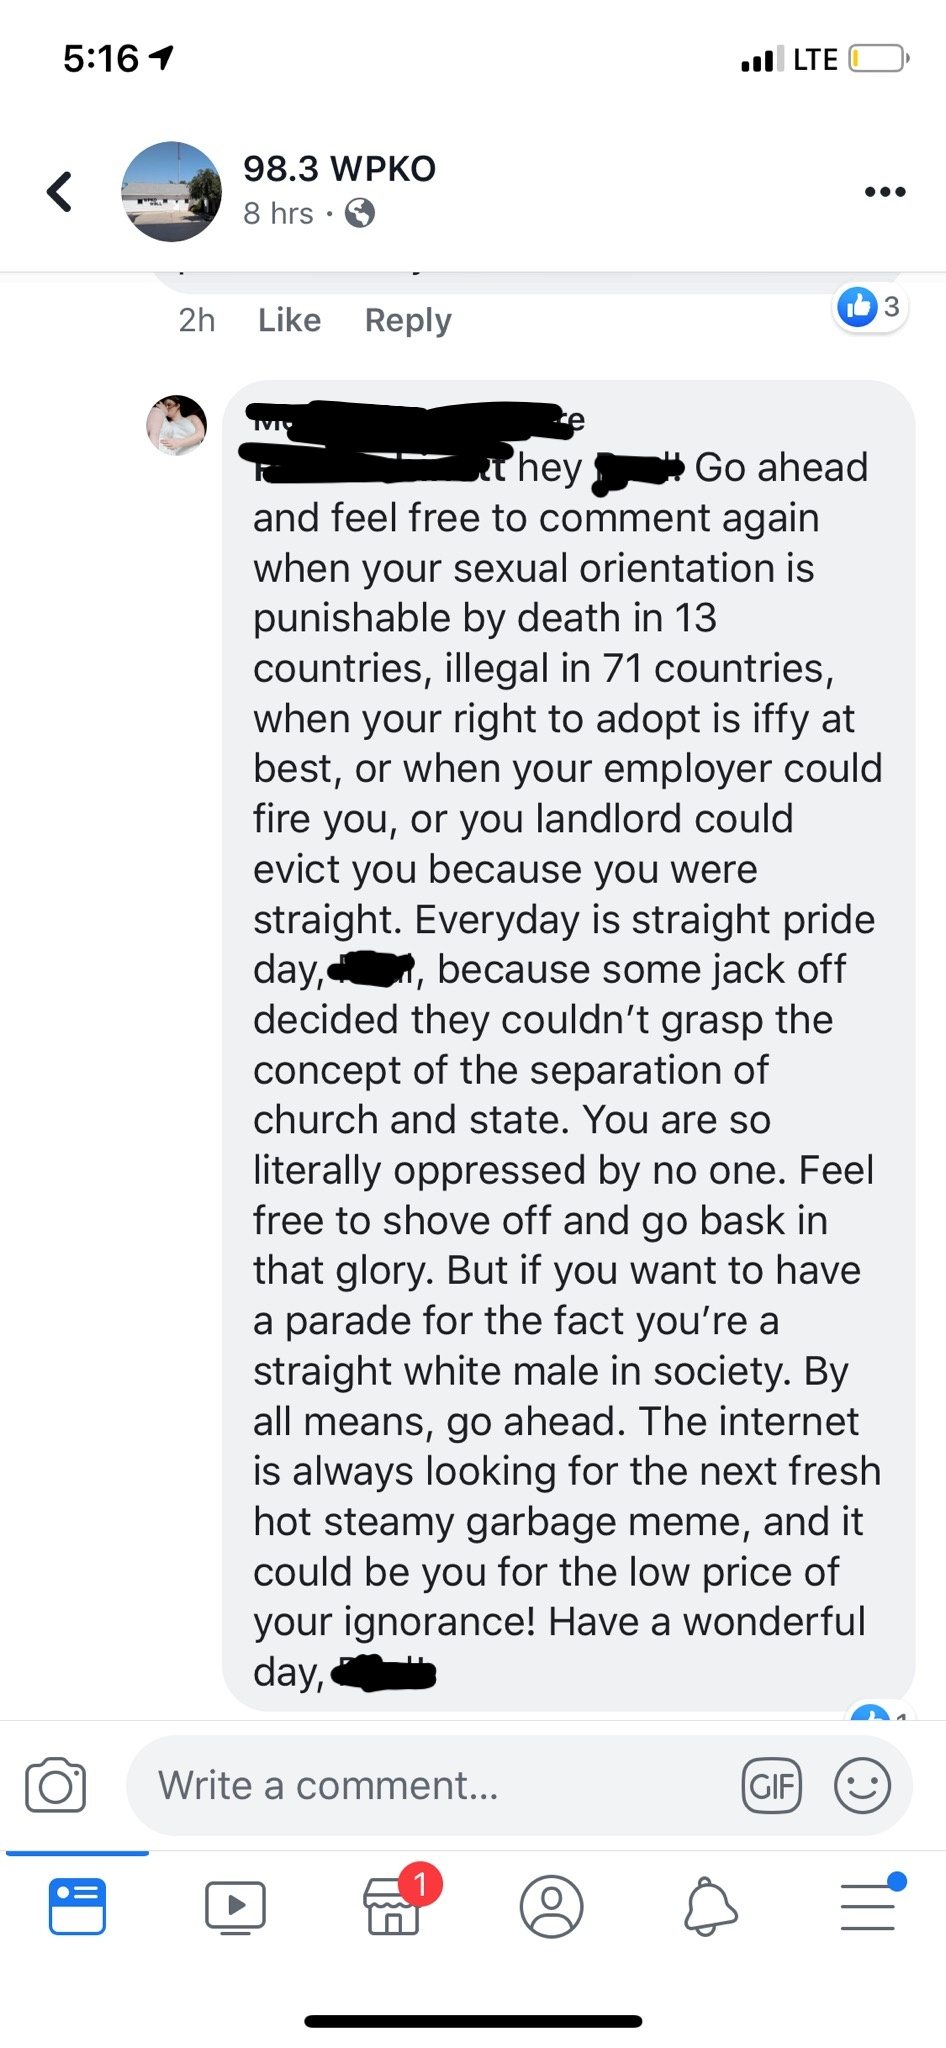 Response to complaints about a pride parade a local